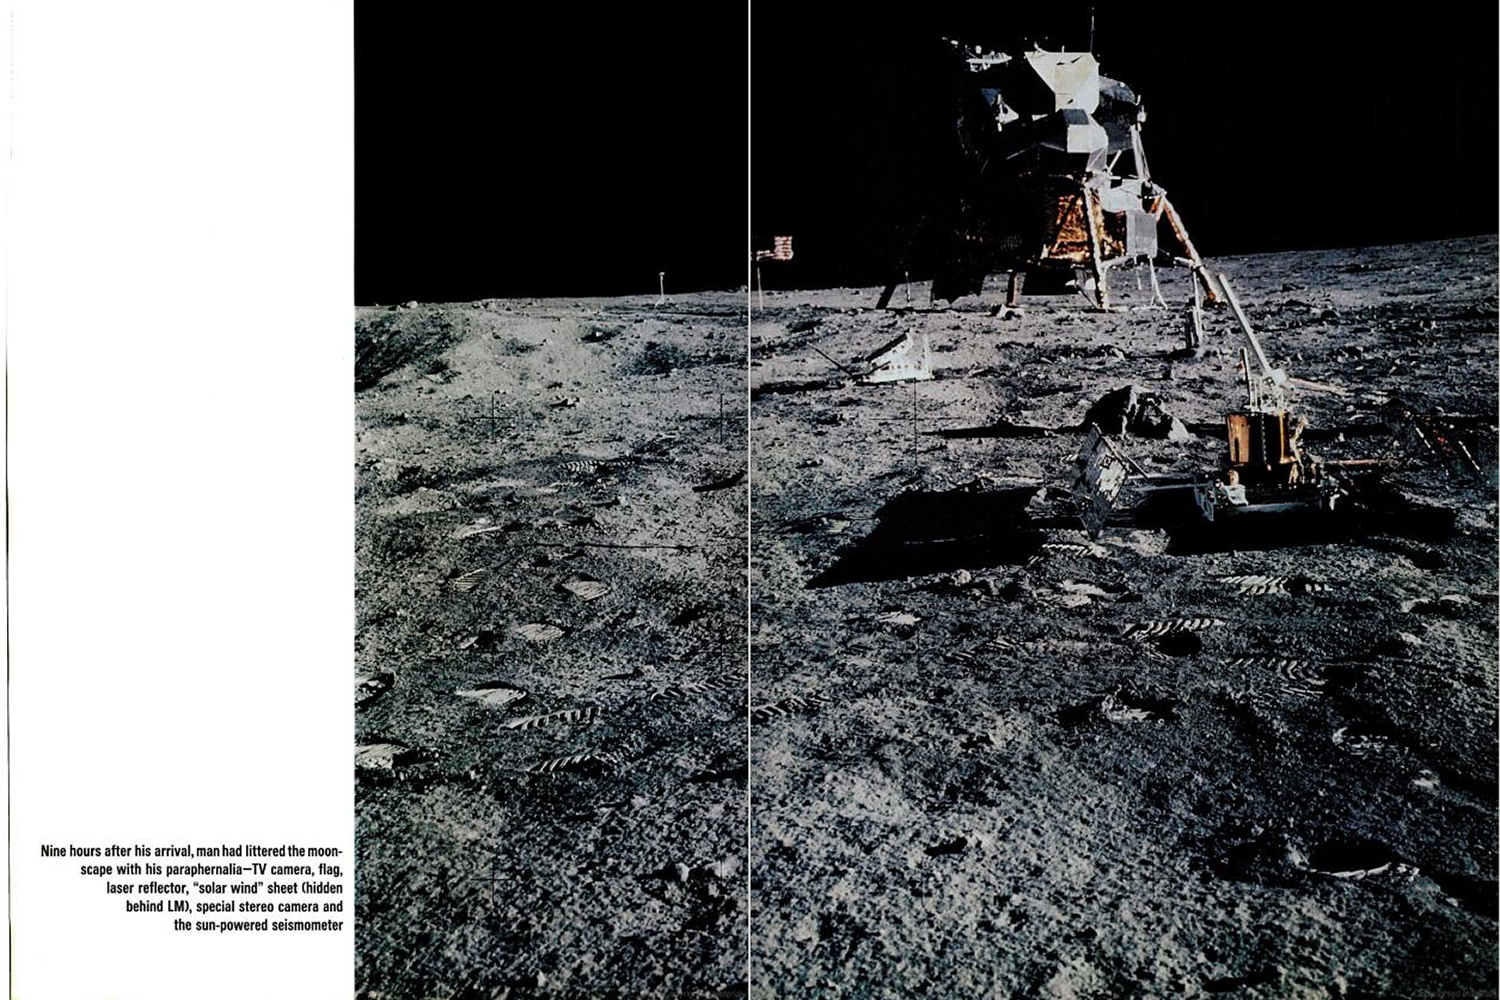 "<b>LIFE magazine Special Edition, August 11, 1969.</b> ""Nine hours after his arrival, man had littered the moonscape with his paraphernalia."""